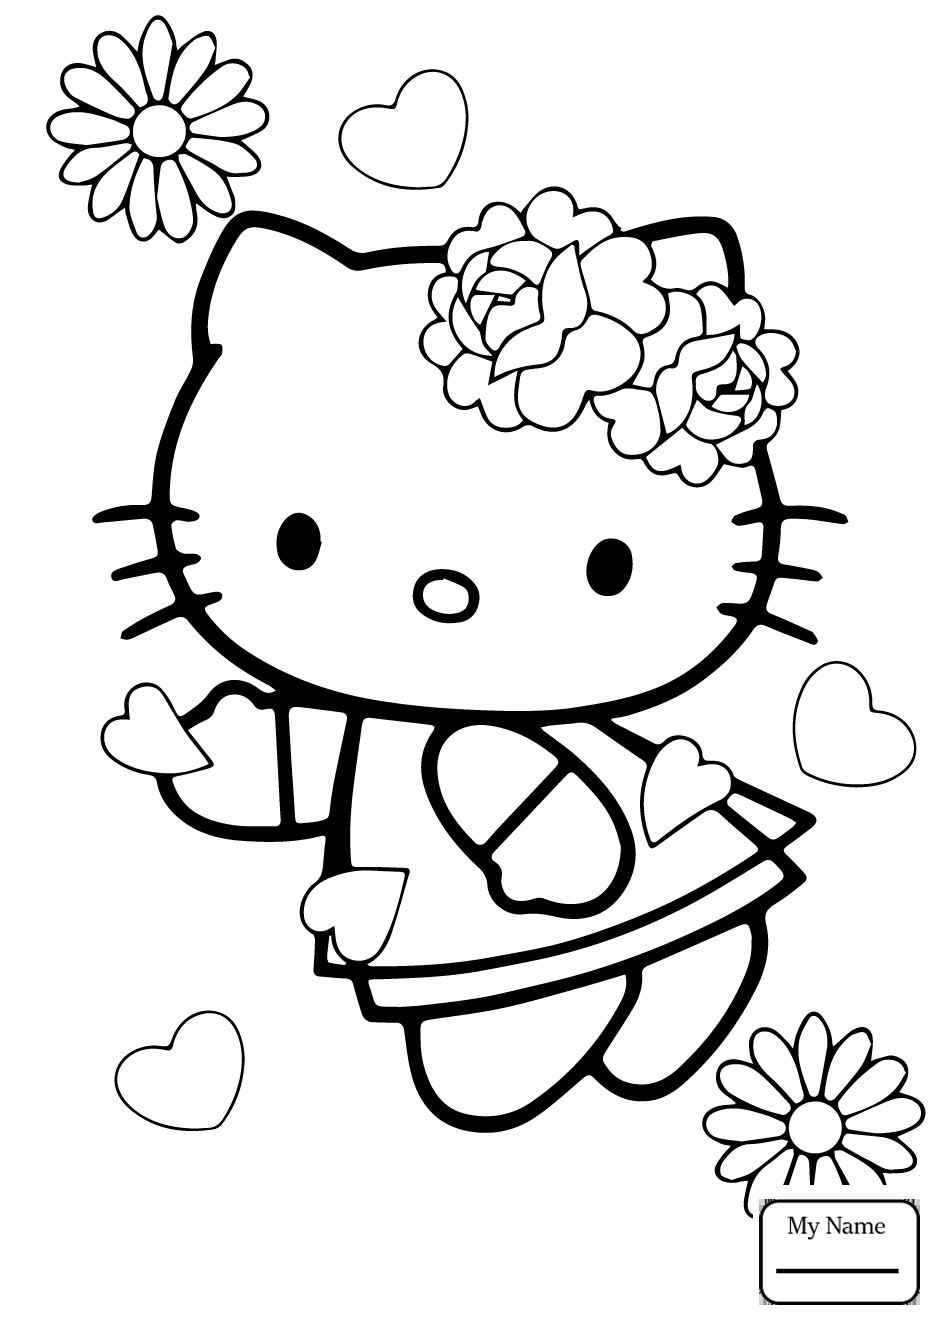 937x1326 Awesome Hello Kitty Nerd Coloring Pages Gallery Free Coloring Book